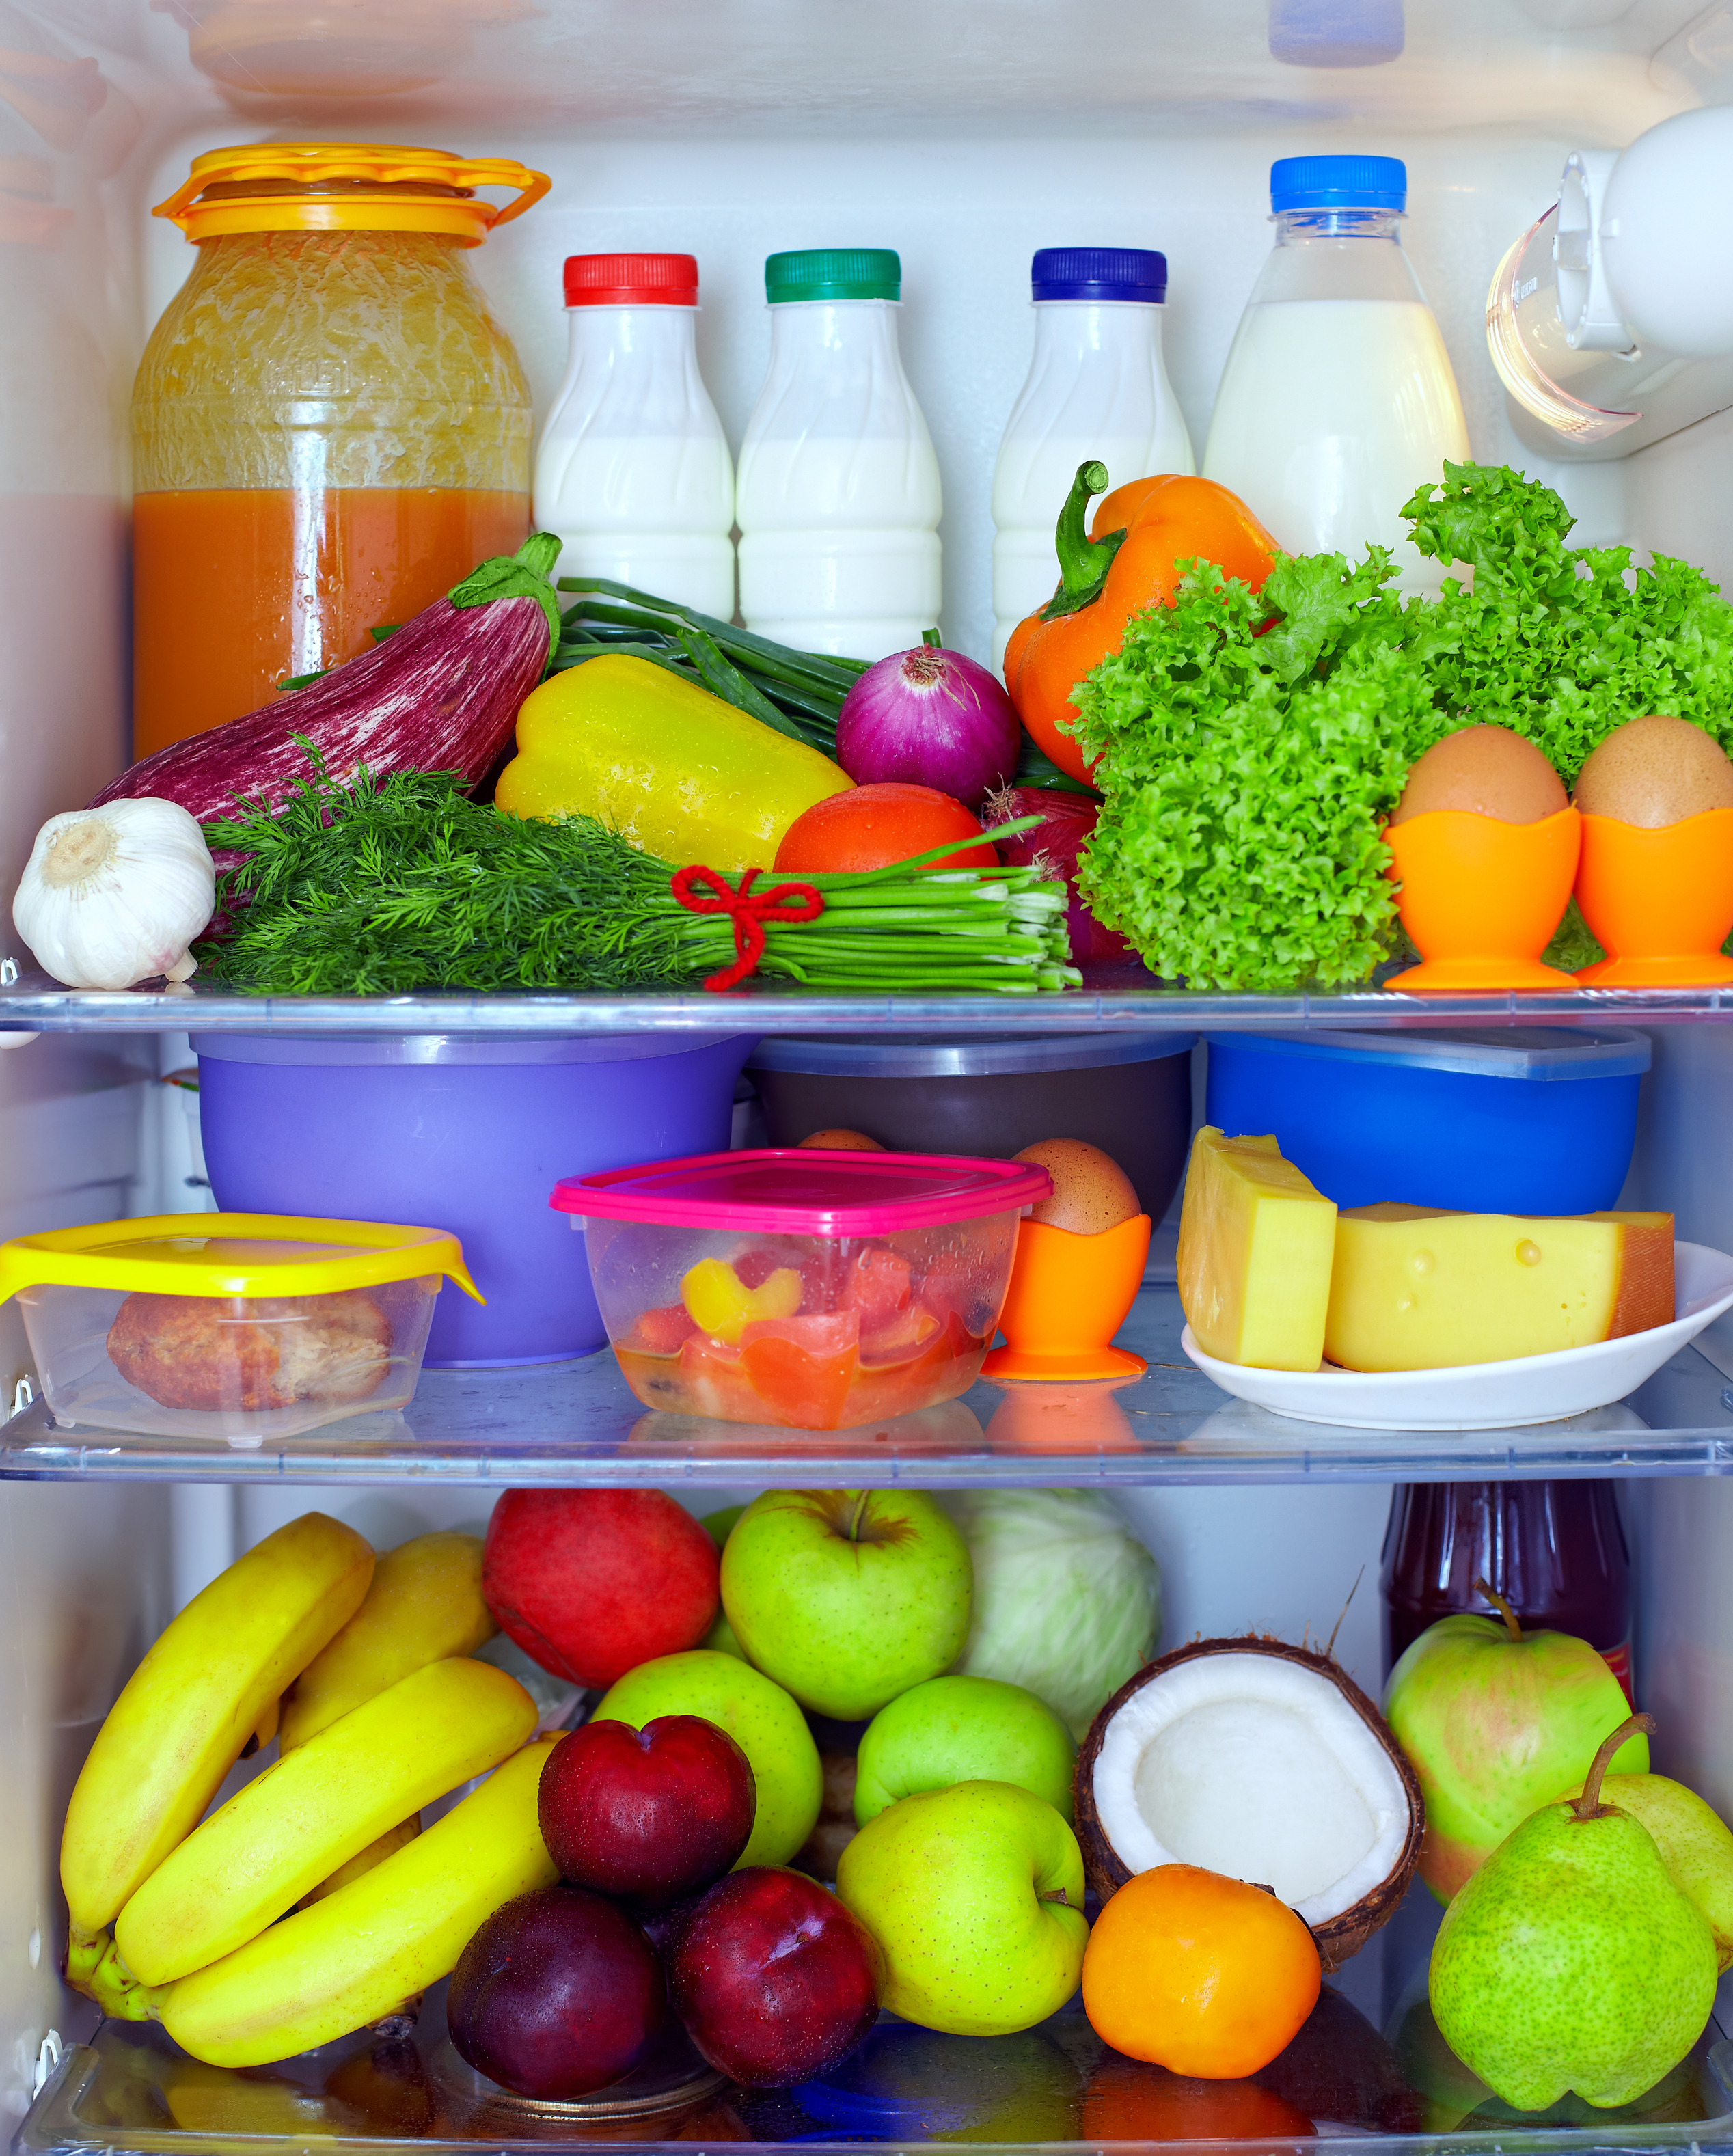 refrigerator full of healthy food. fruits, vegetables and dairy products